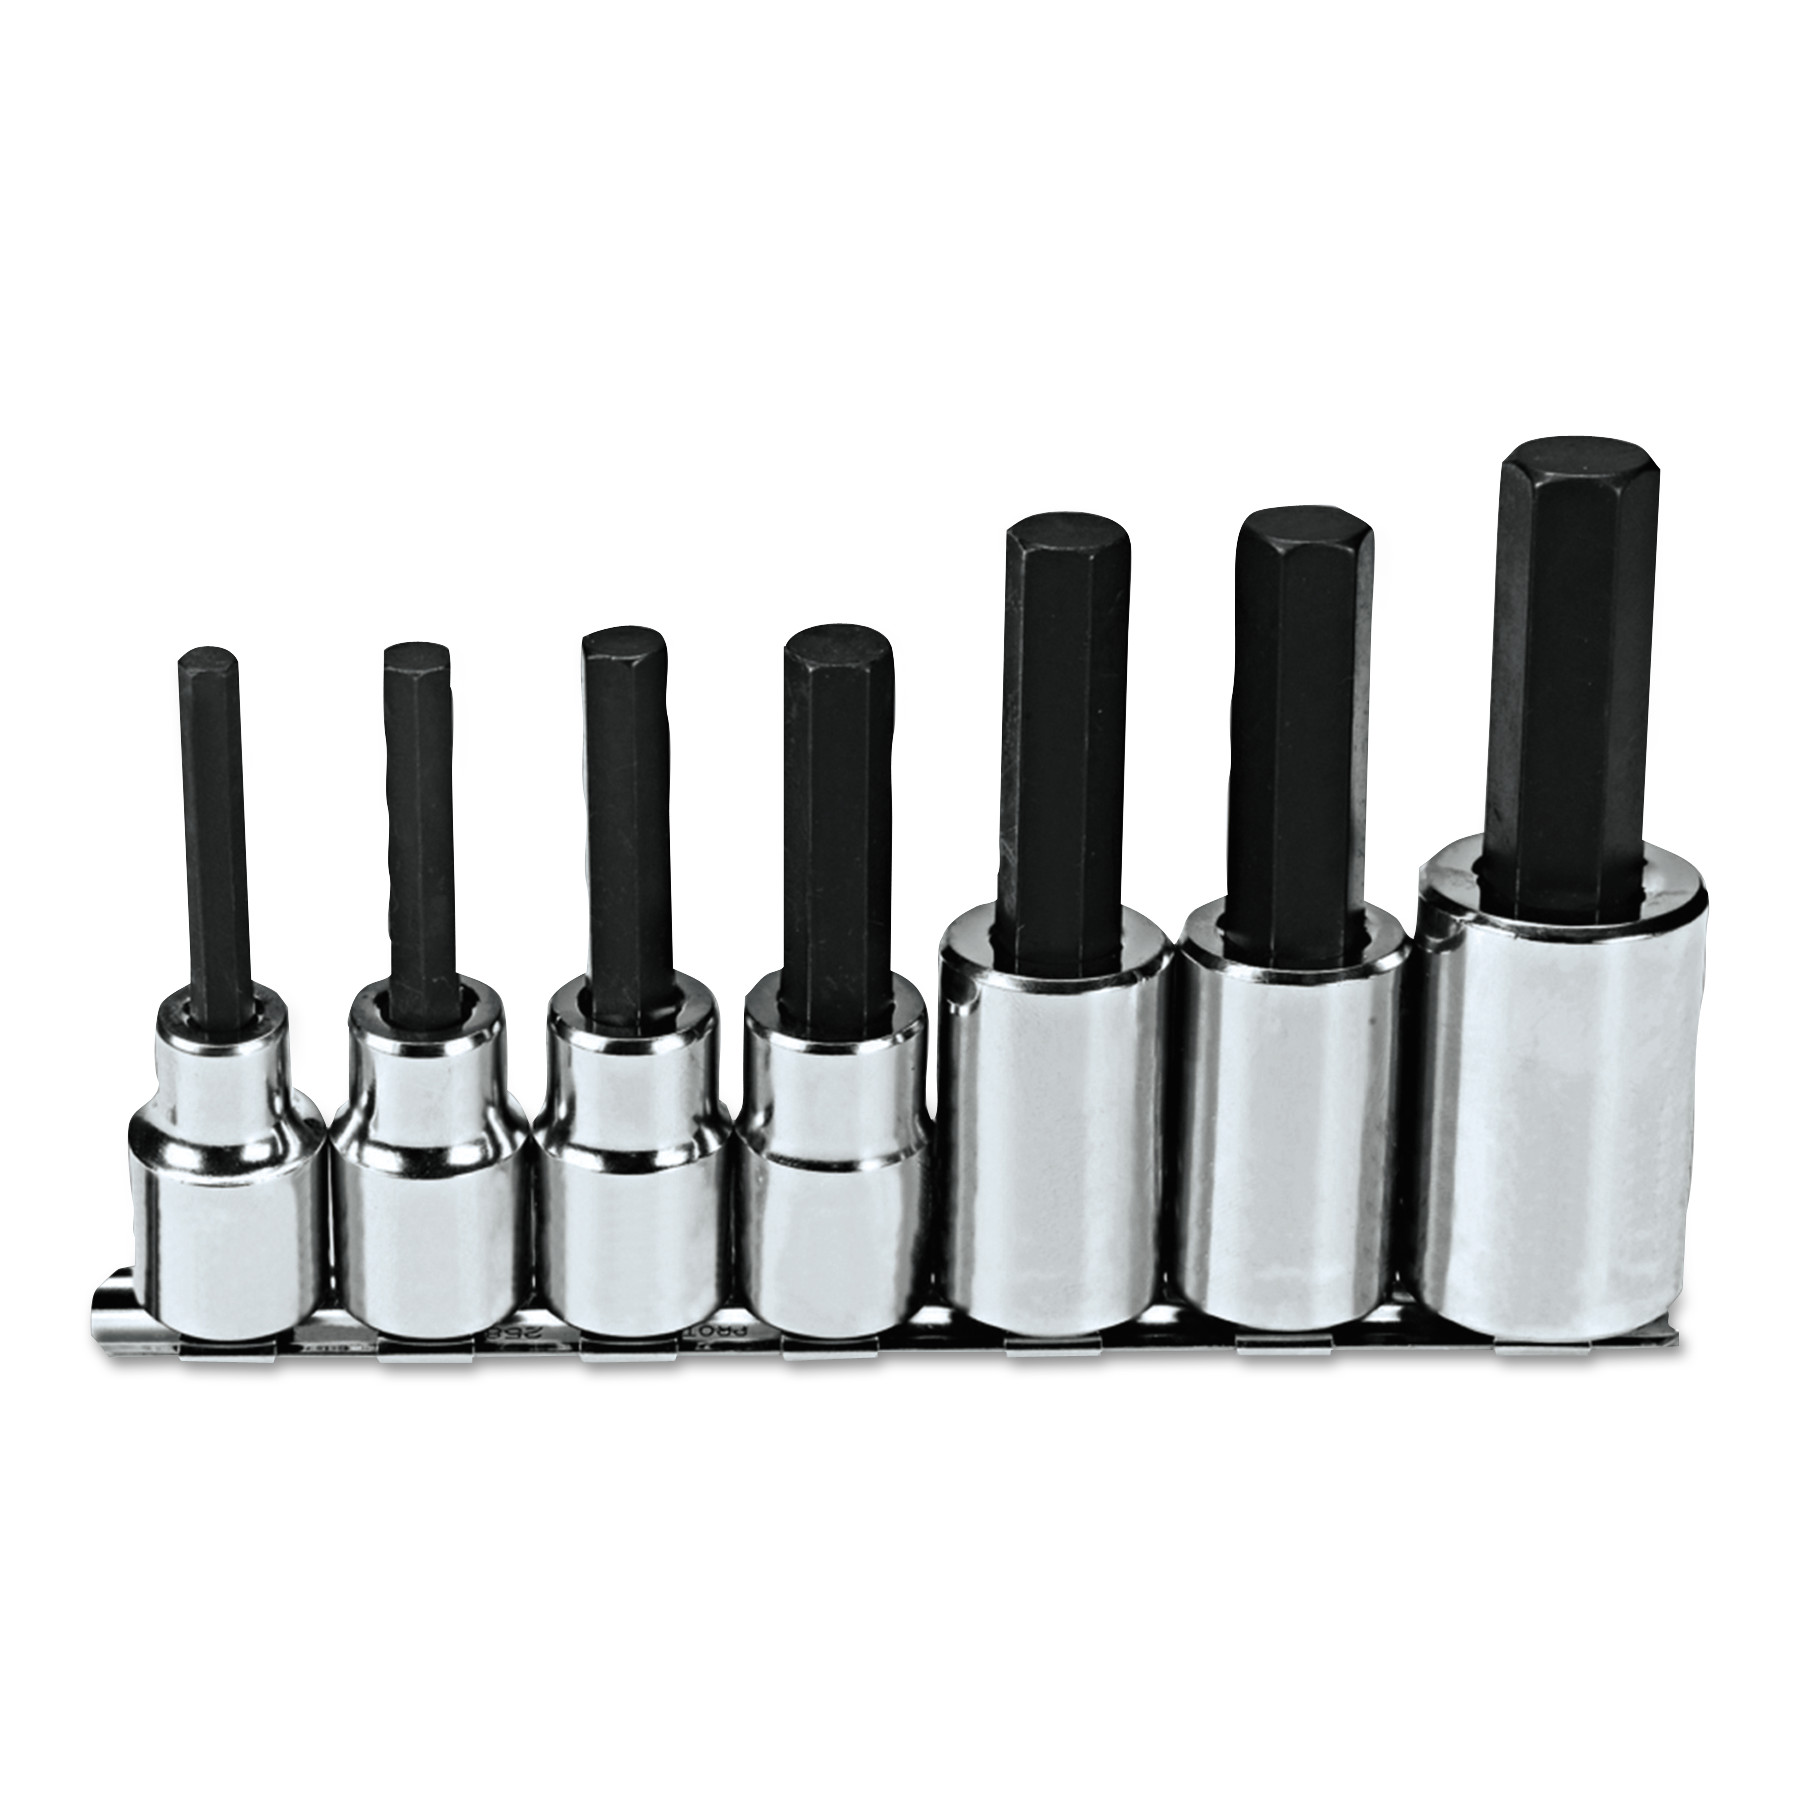 Proto 7 Pc. Hex Bit Socket Sets, 1/2 in Drive